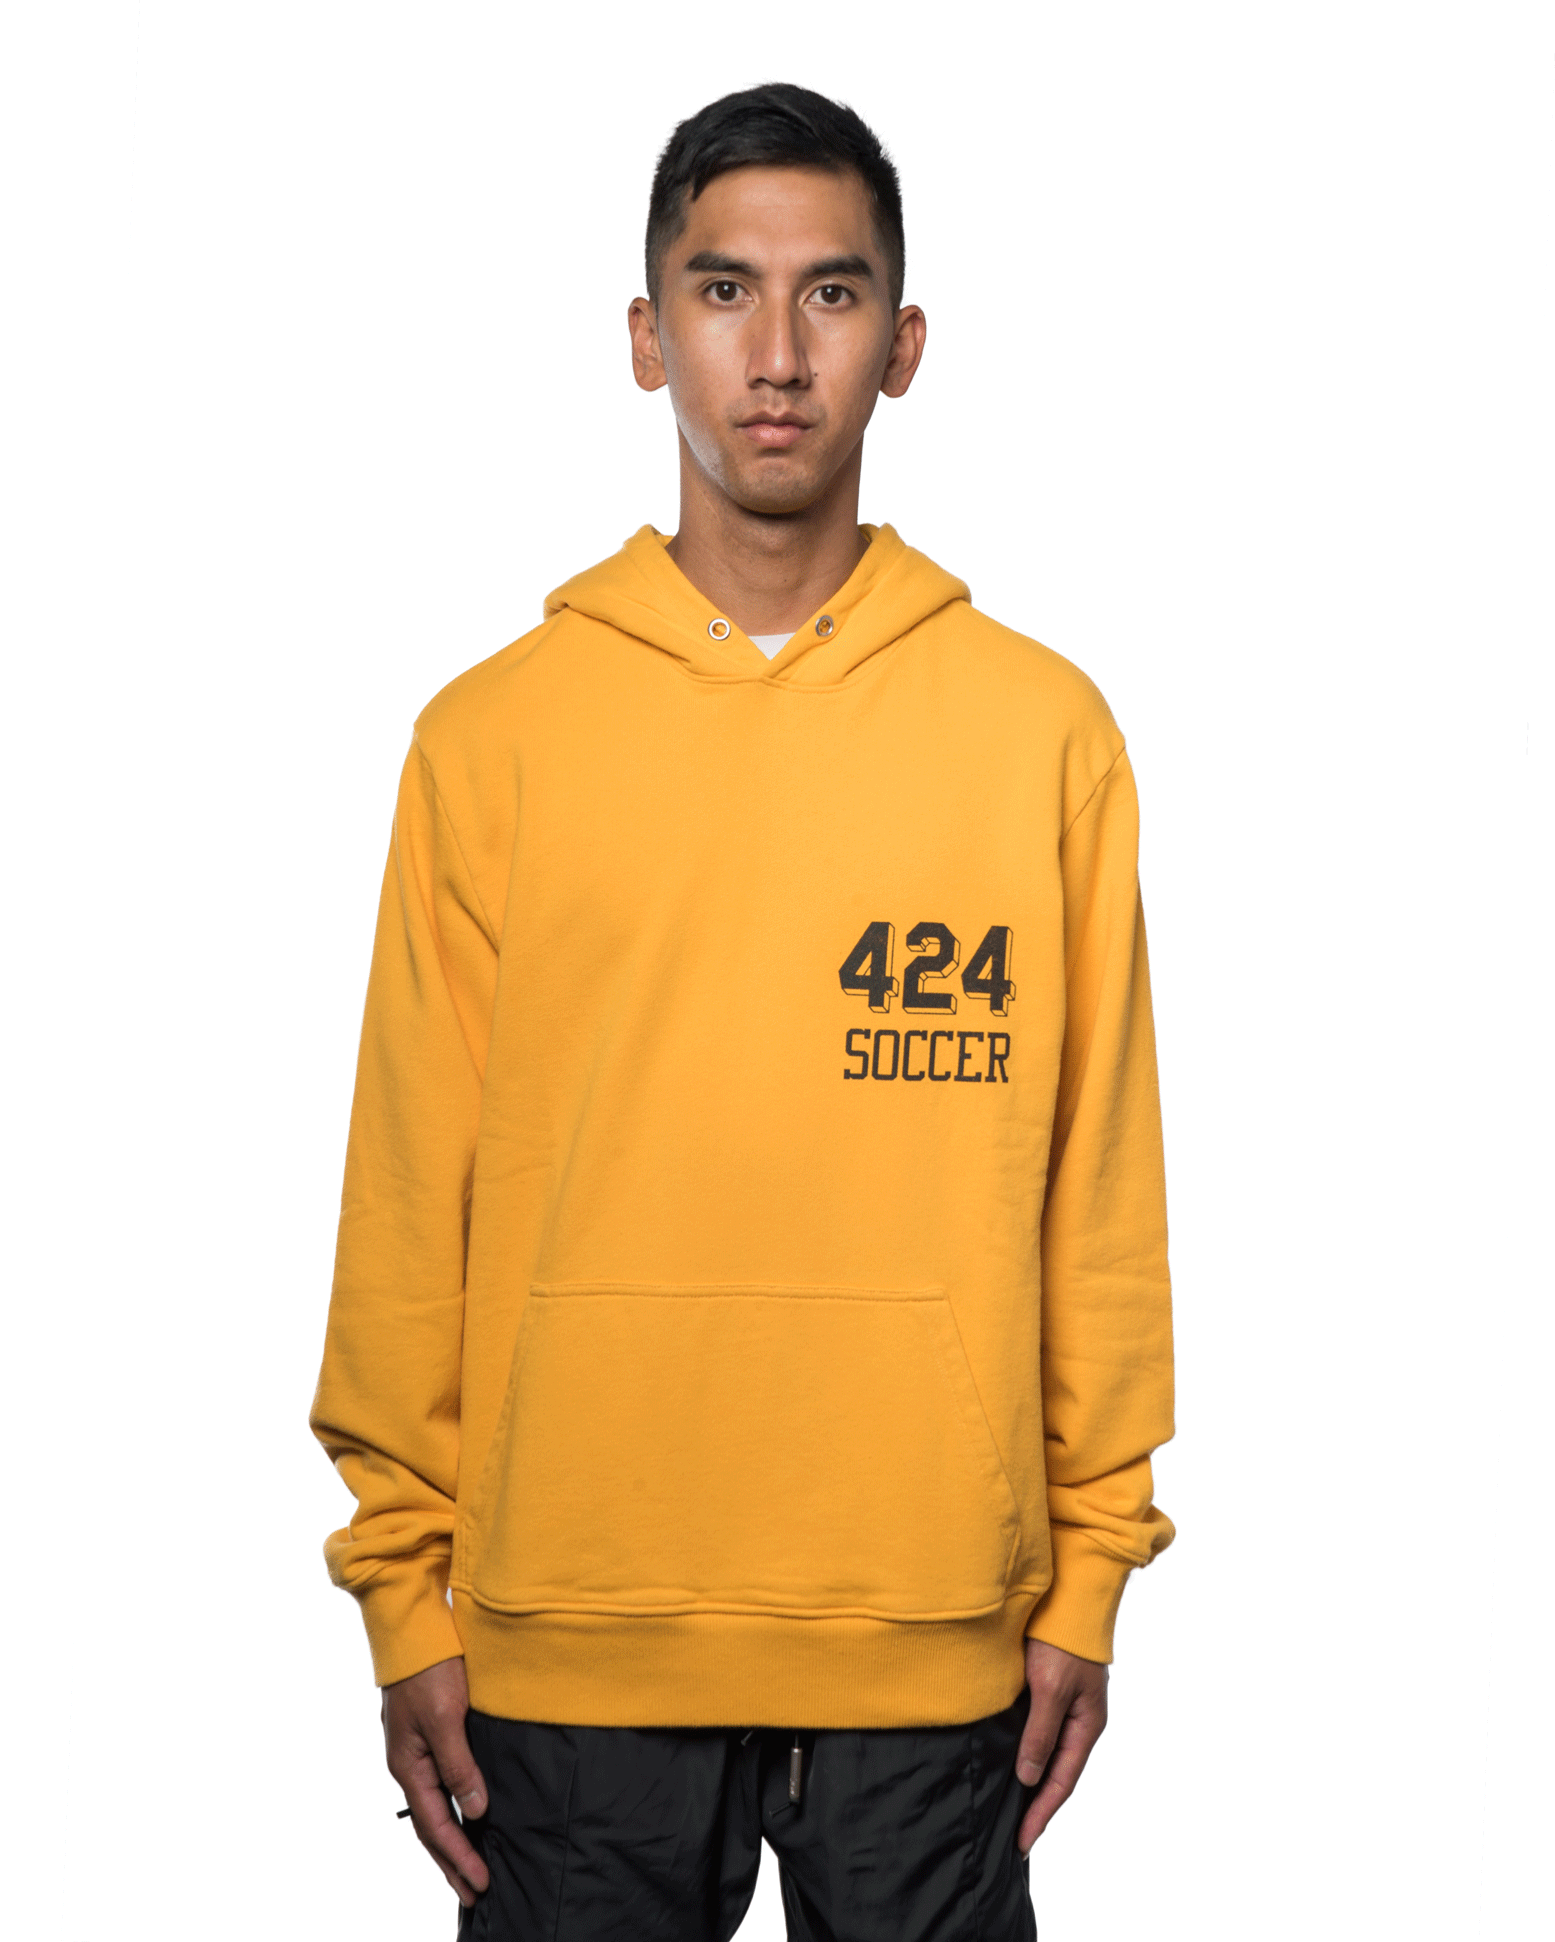 424 Soccer Hooded Sweatshirt Yellow